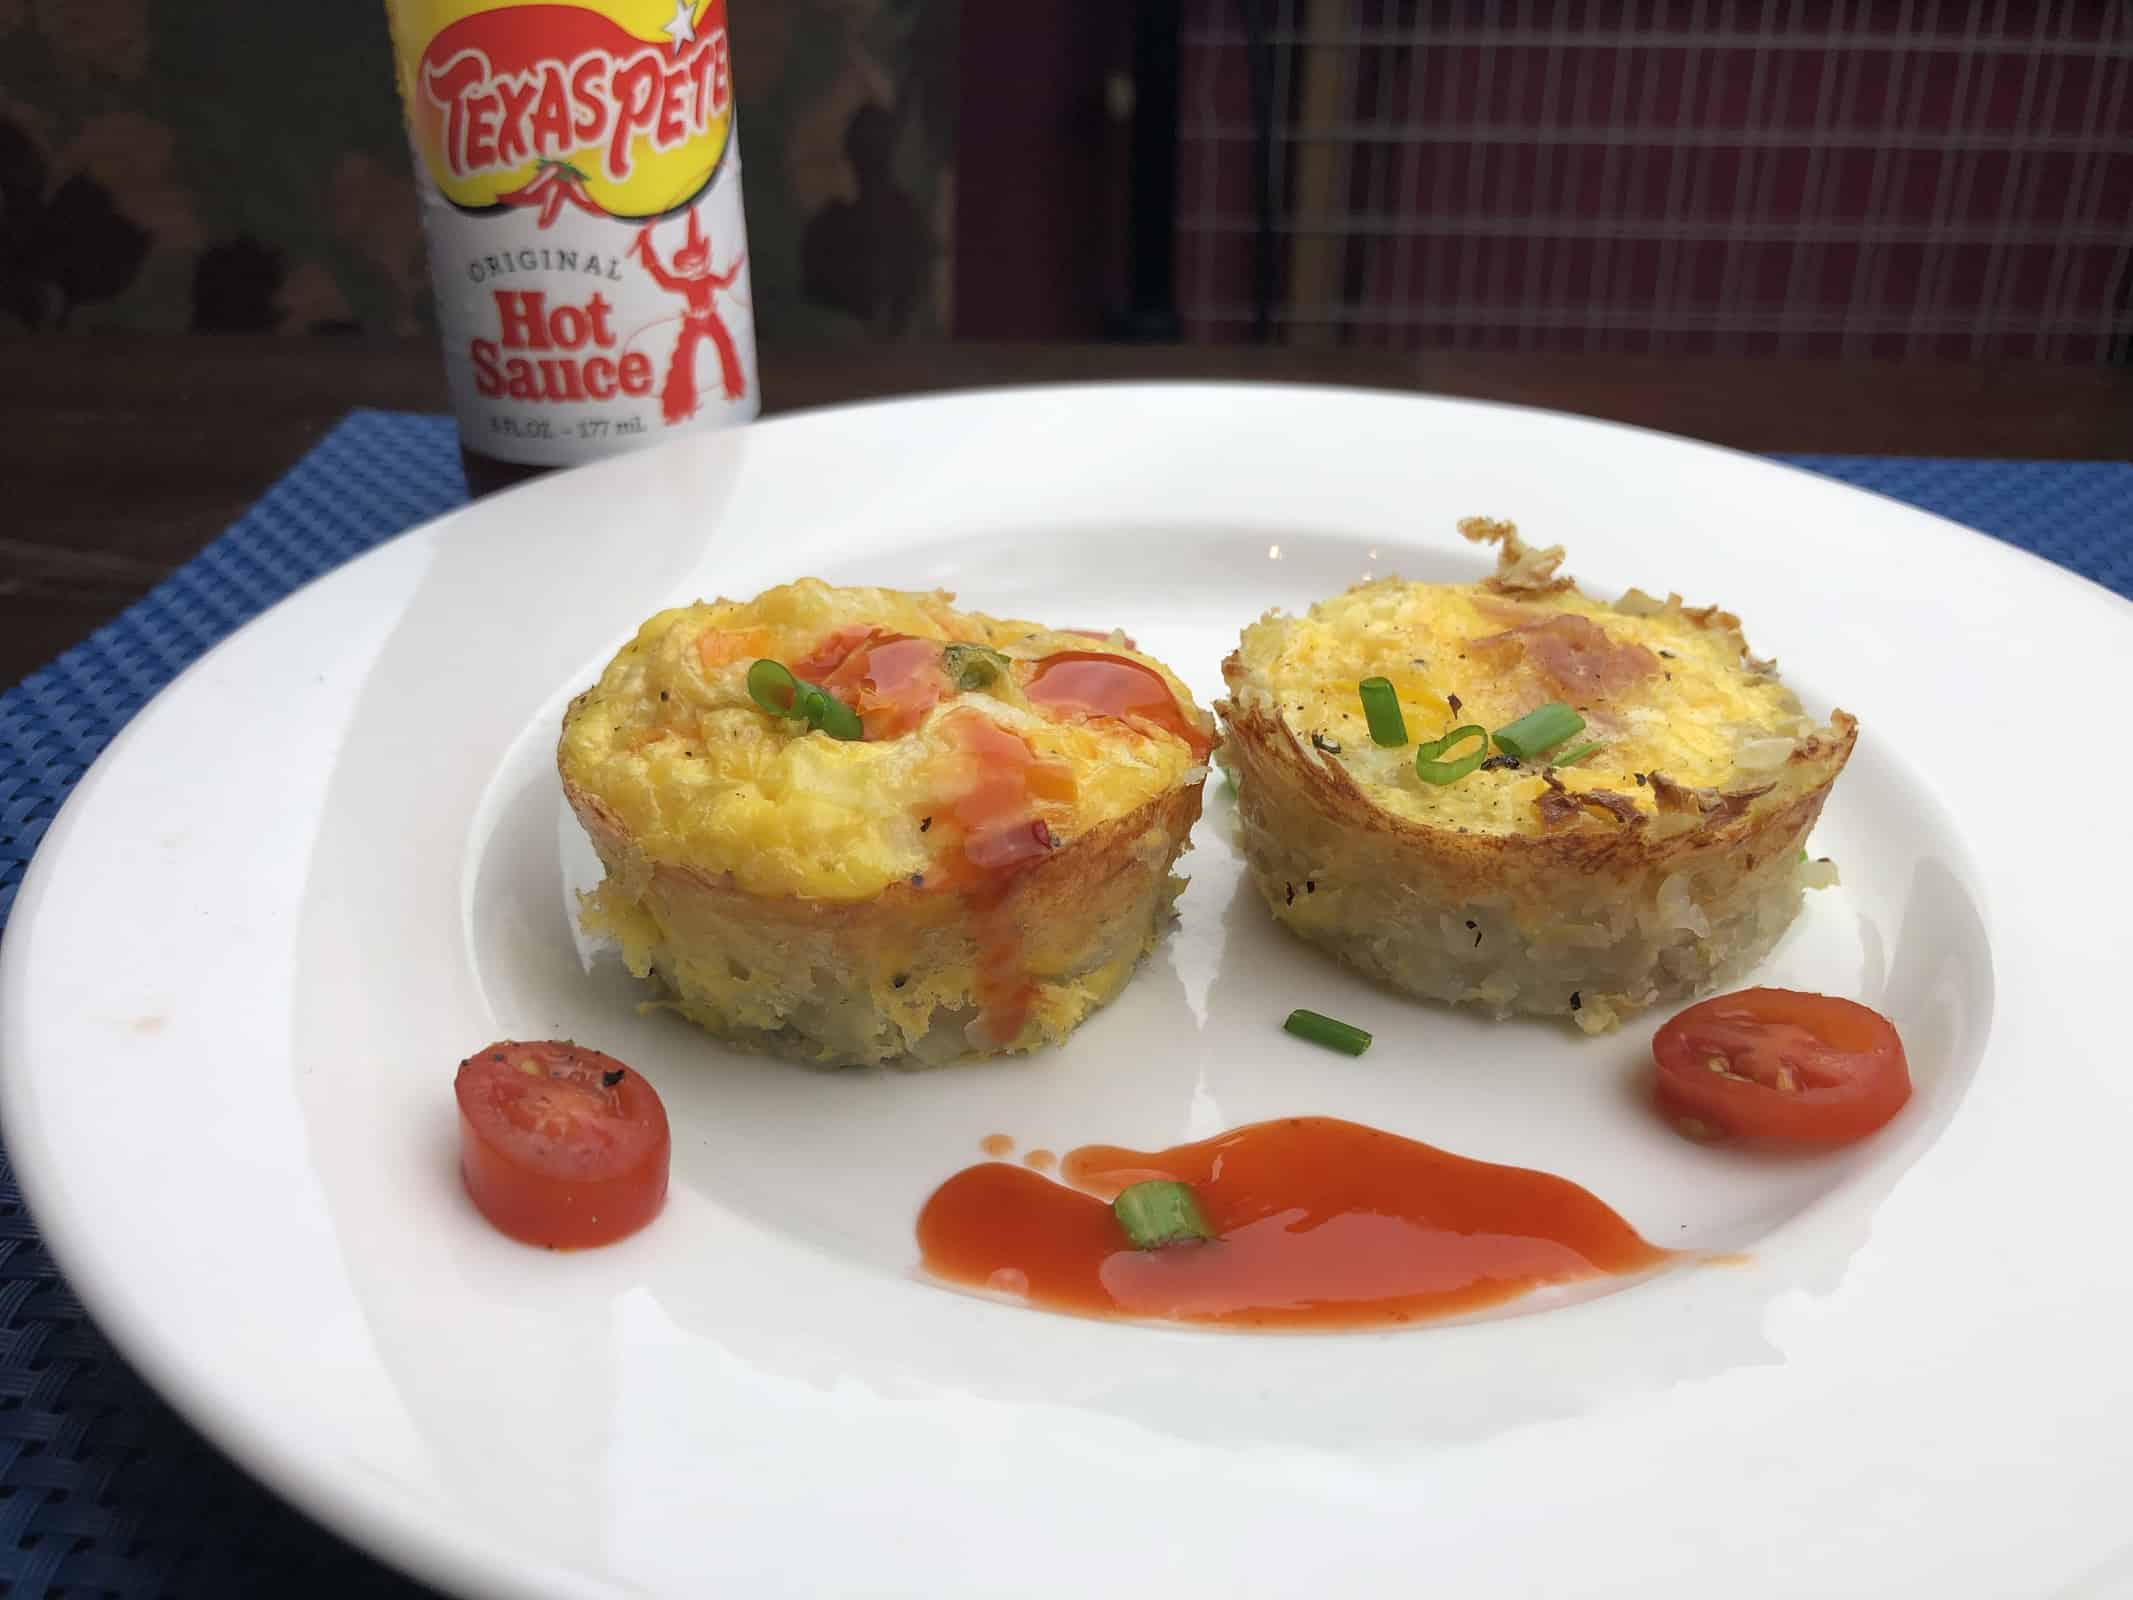 Two mini Fritattas on a white plate with hot sauce chives and tomatoes and a bottle of Texas Pete hot sauce behind the plate